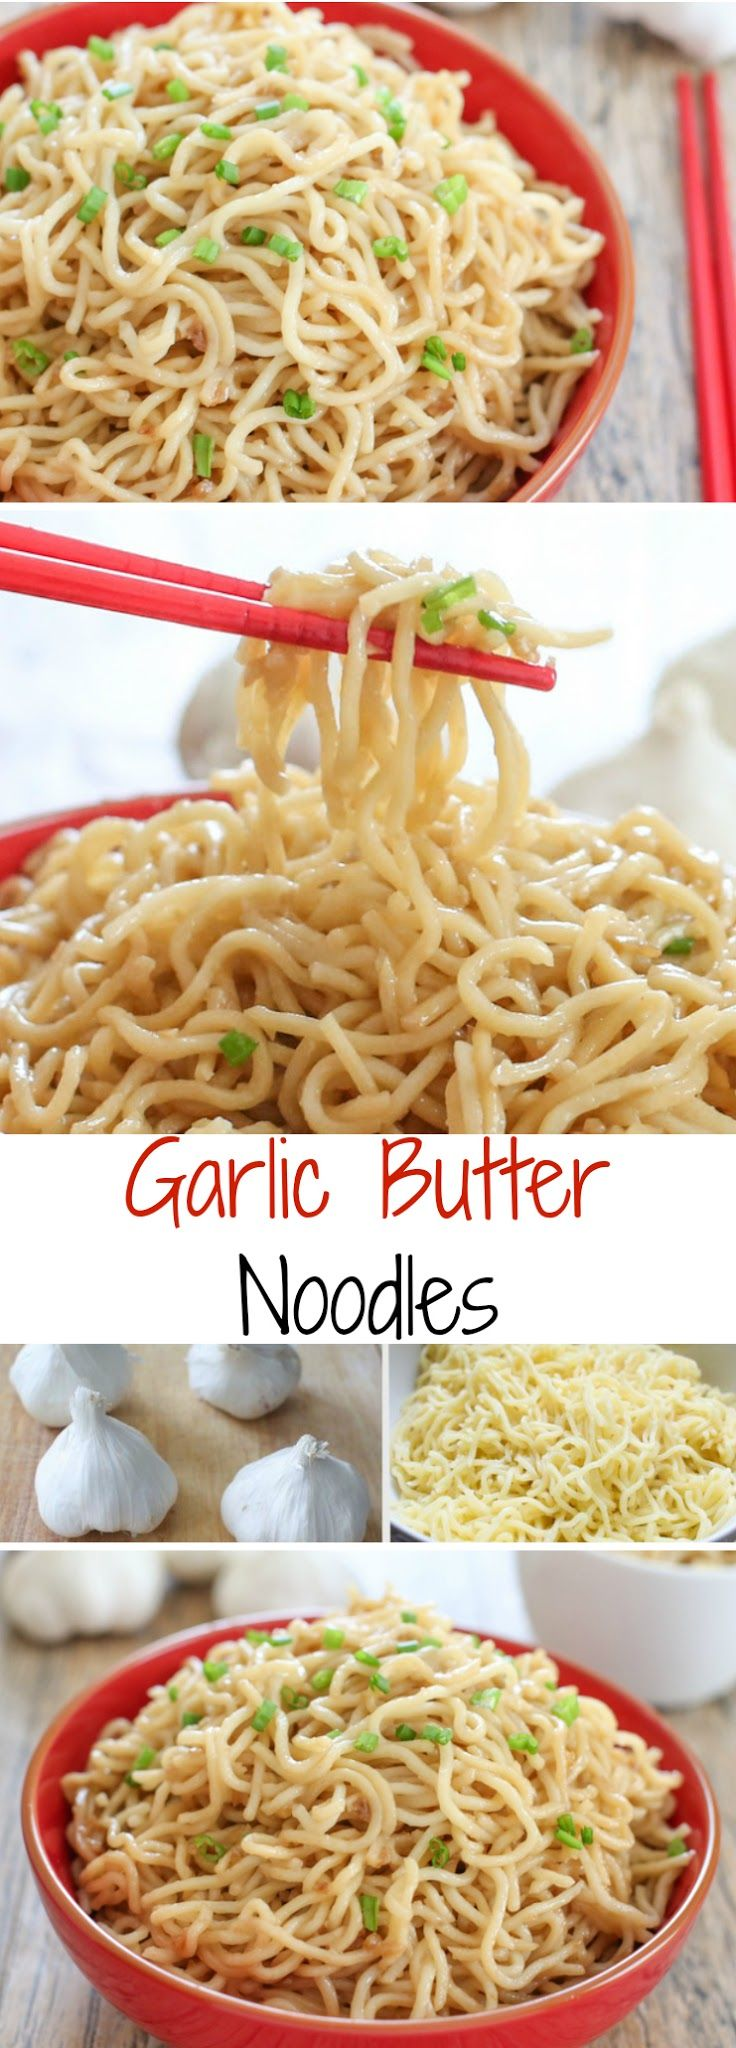 Garlic Butter Noodles. Tastes just like the famous ones from San Francisco! Via http://kirbiecravings.com/